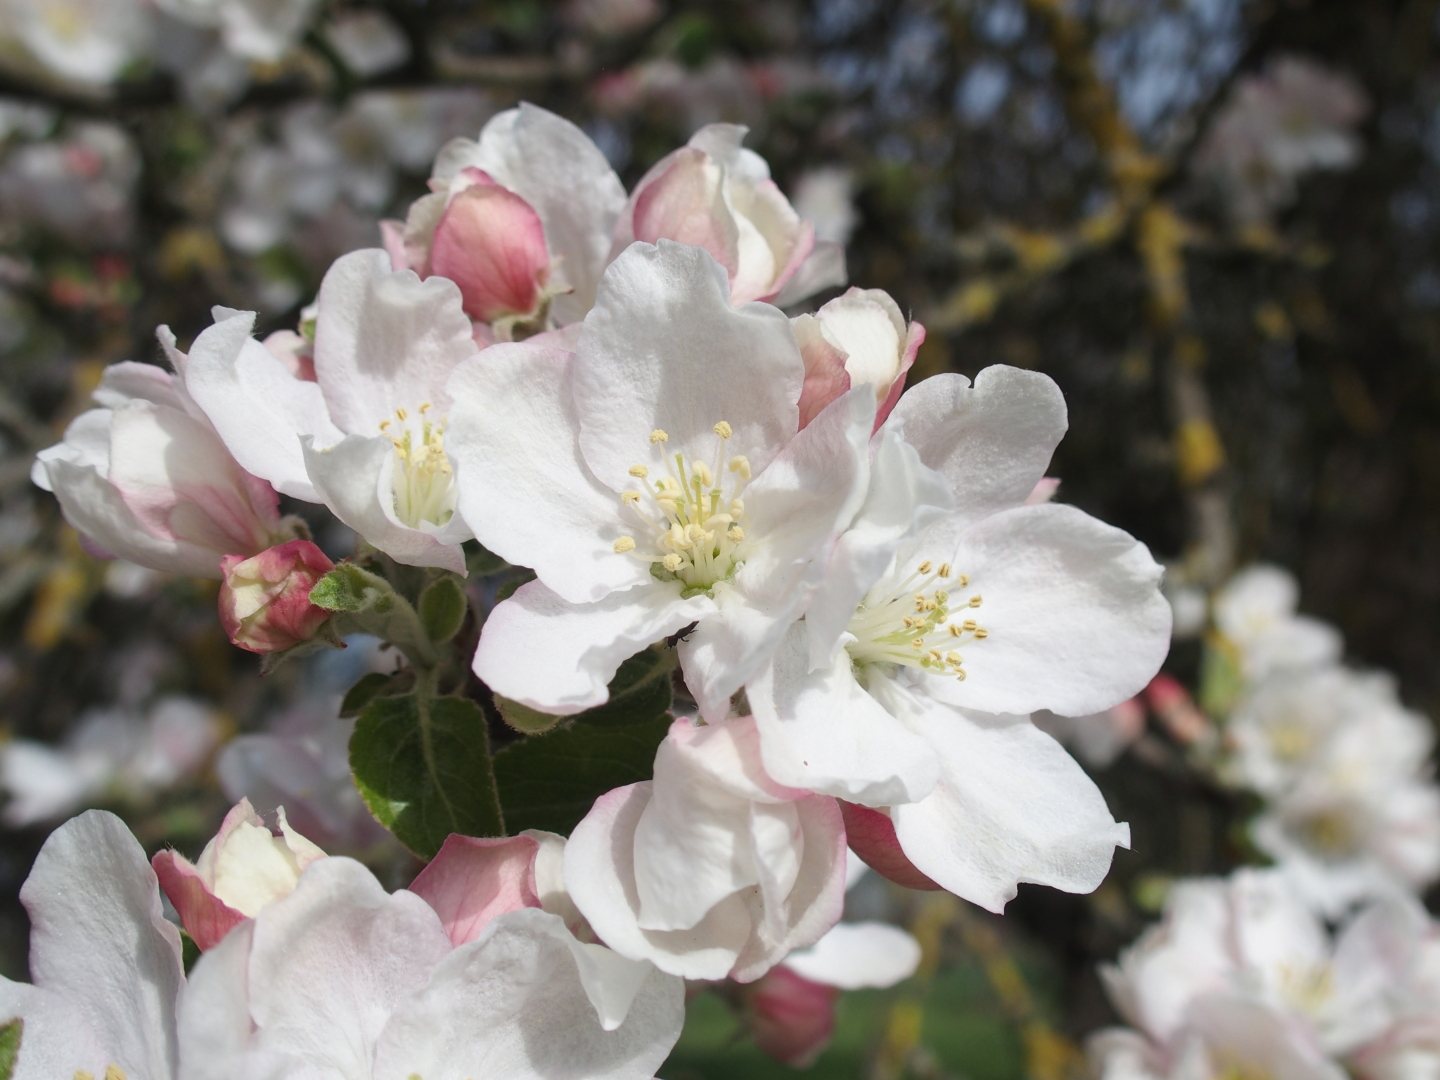 You wouldn't believe how many different flowers there are - this is an apple tree.